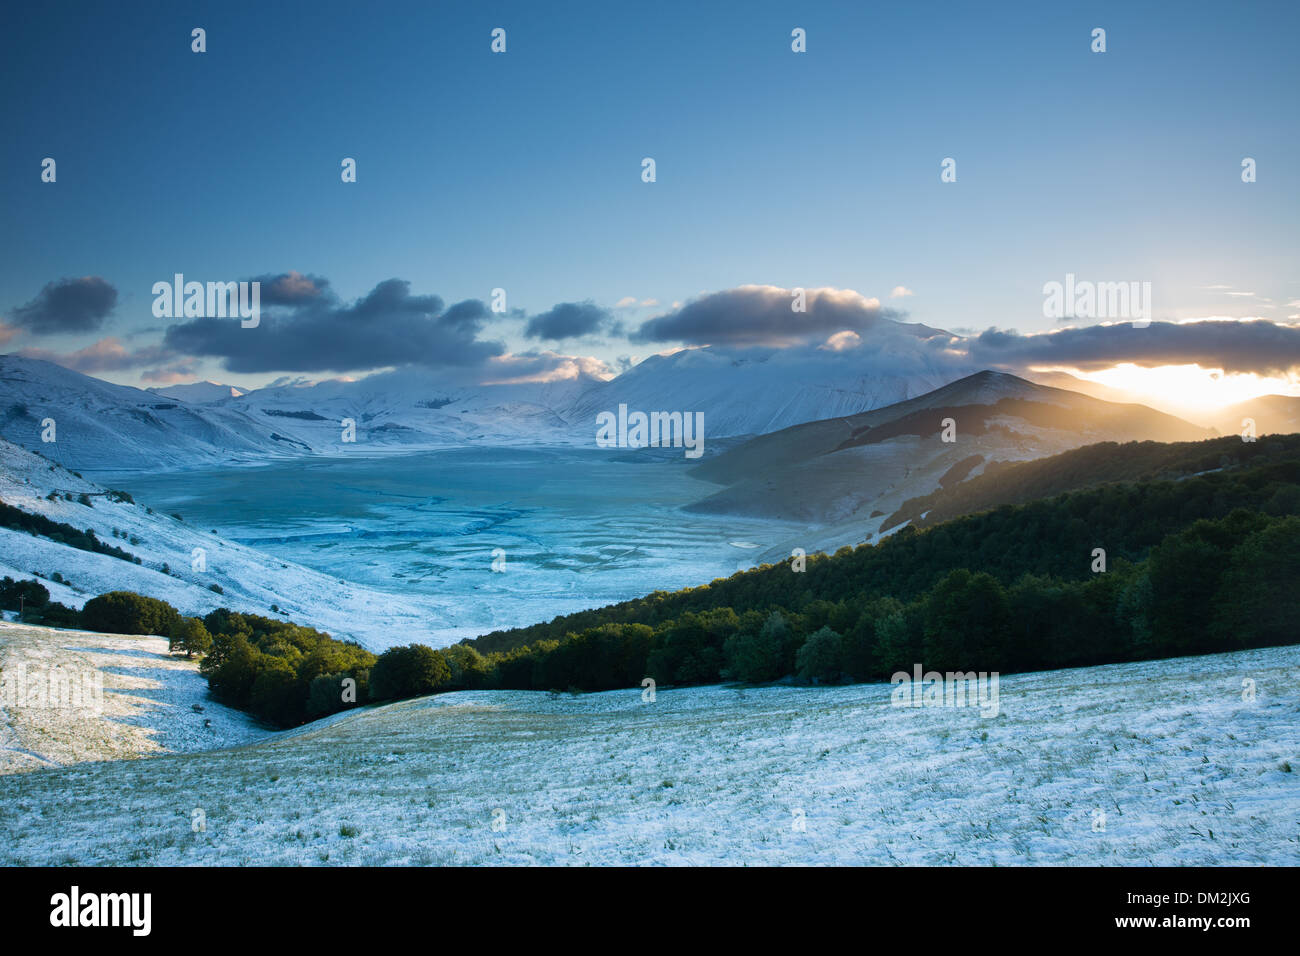 snow on the Piano Grande at dawn, Monti Sibillini National Park, Umbria. Italy - Stock Image